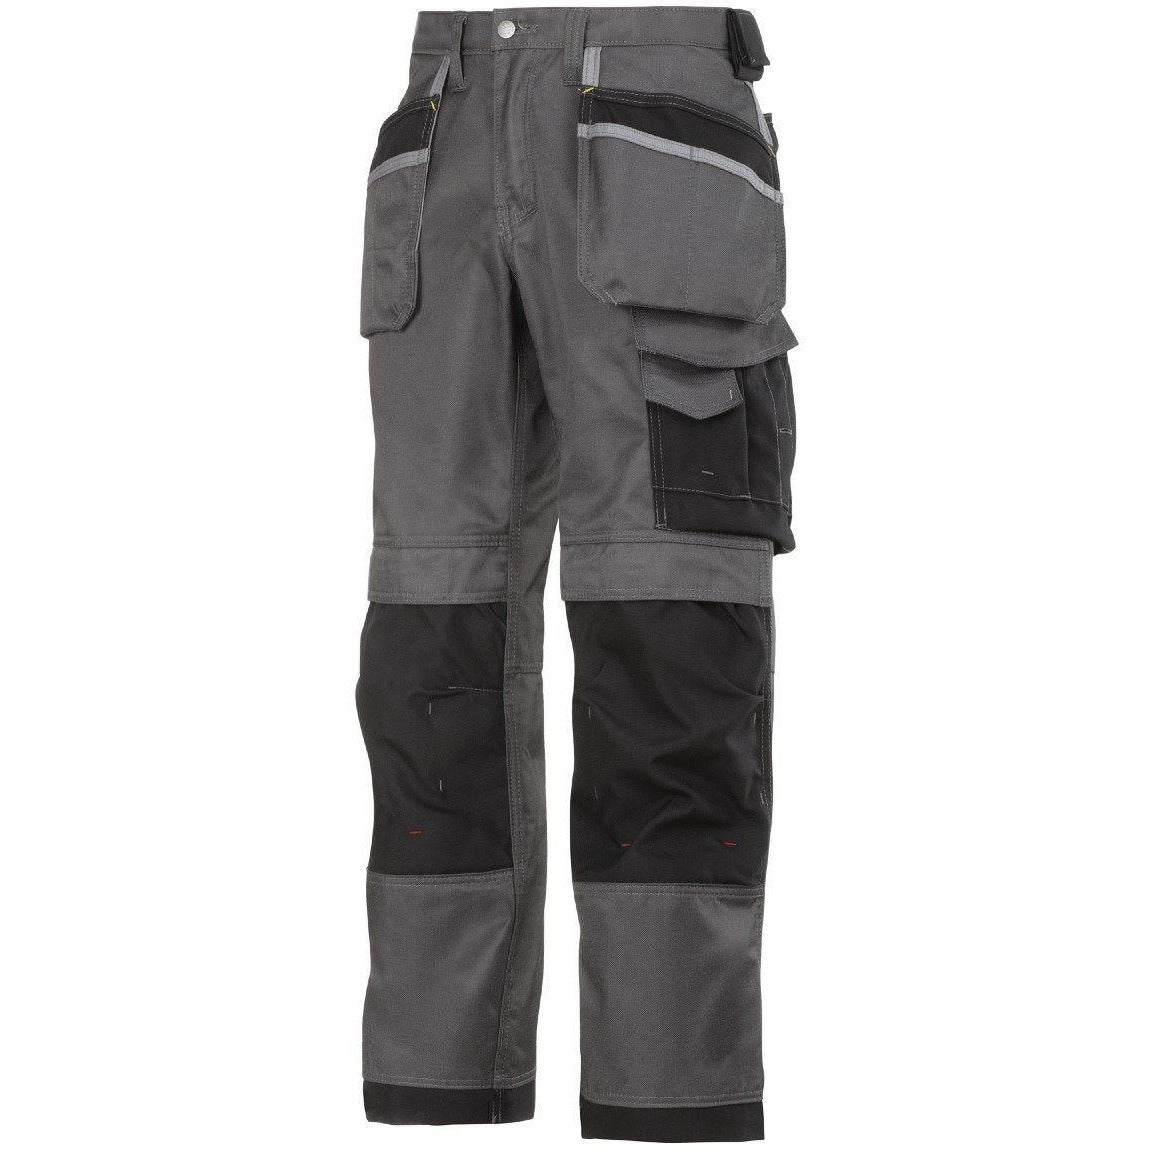 Snickers Workwear Craftsmen Holster Pocket Trousers DuraTwill